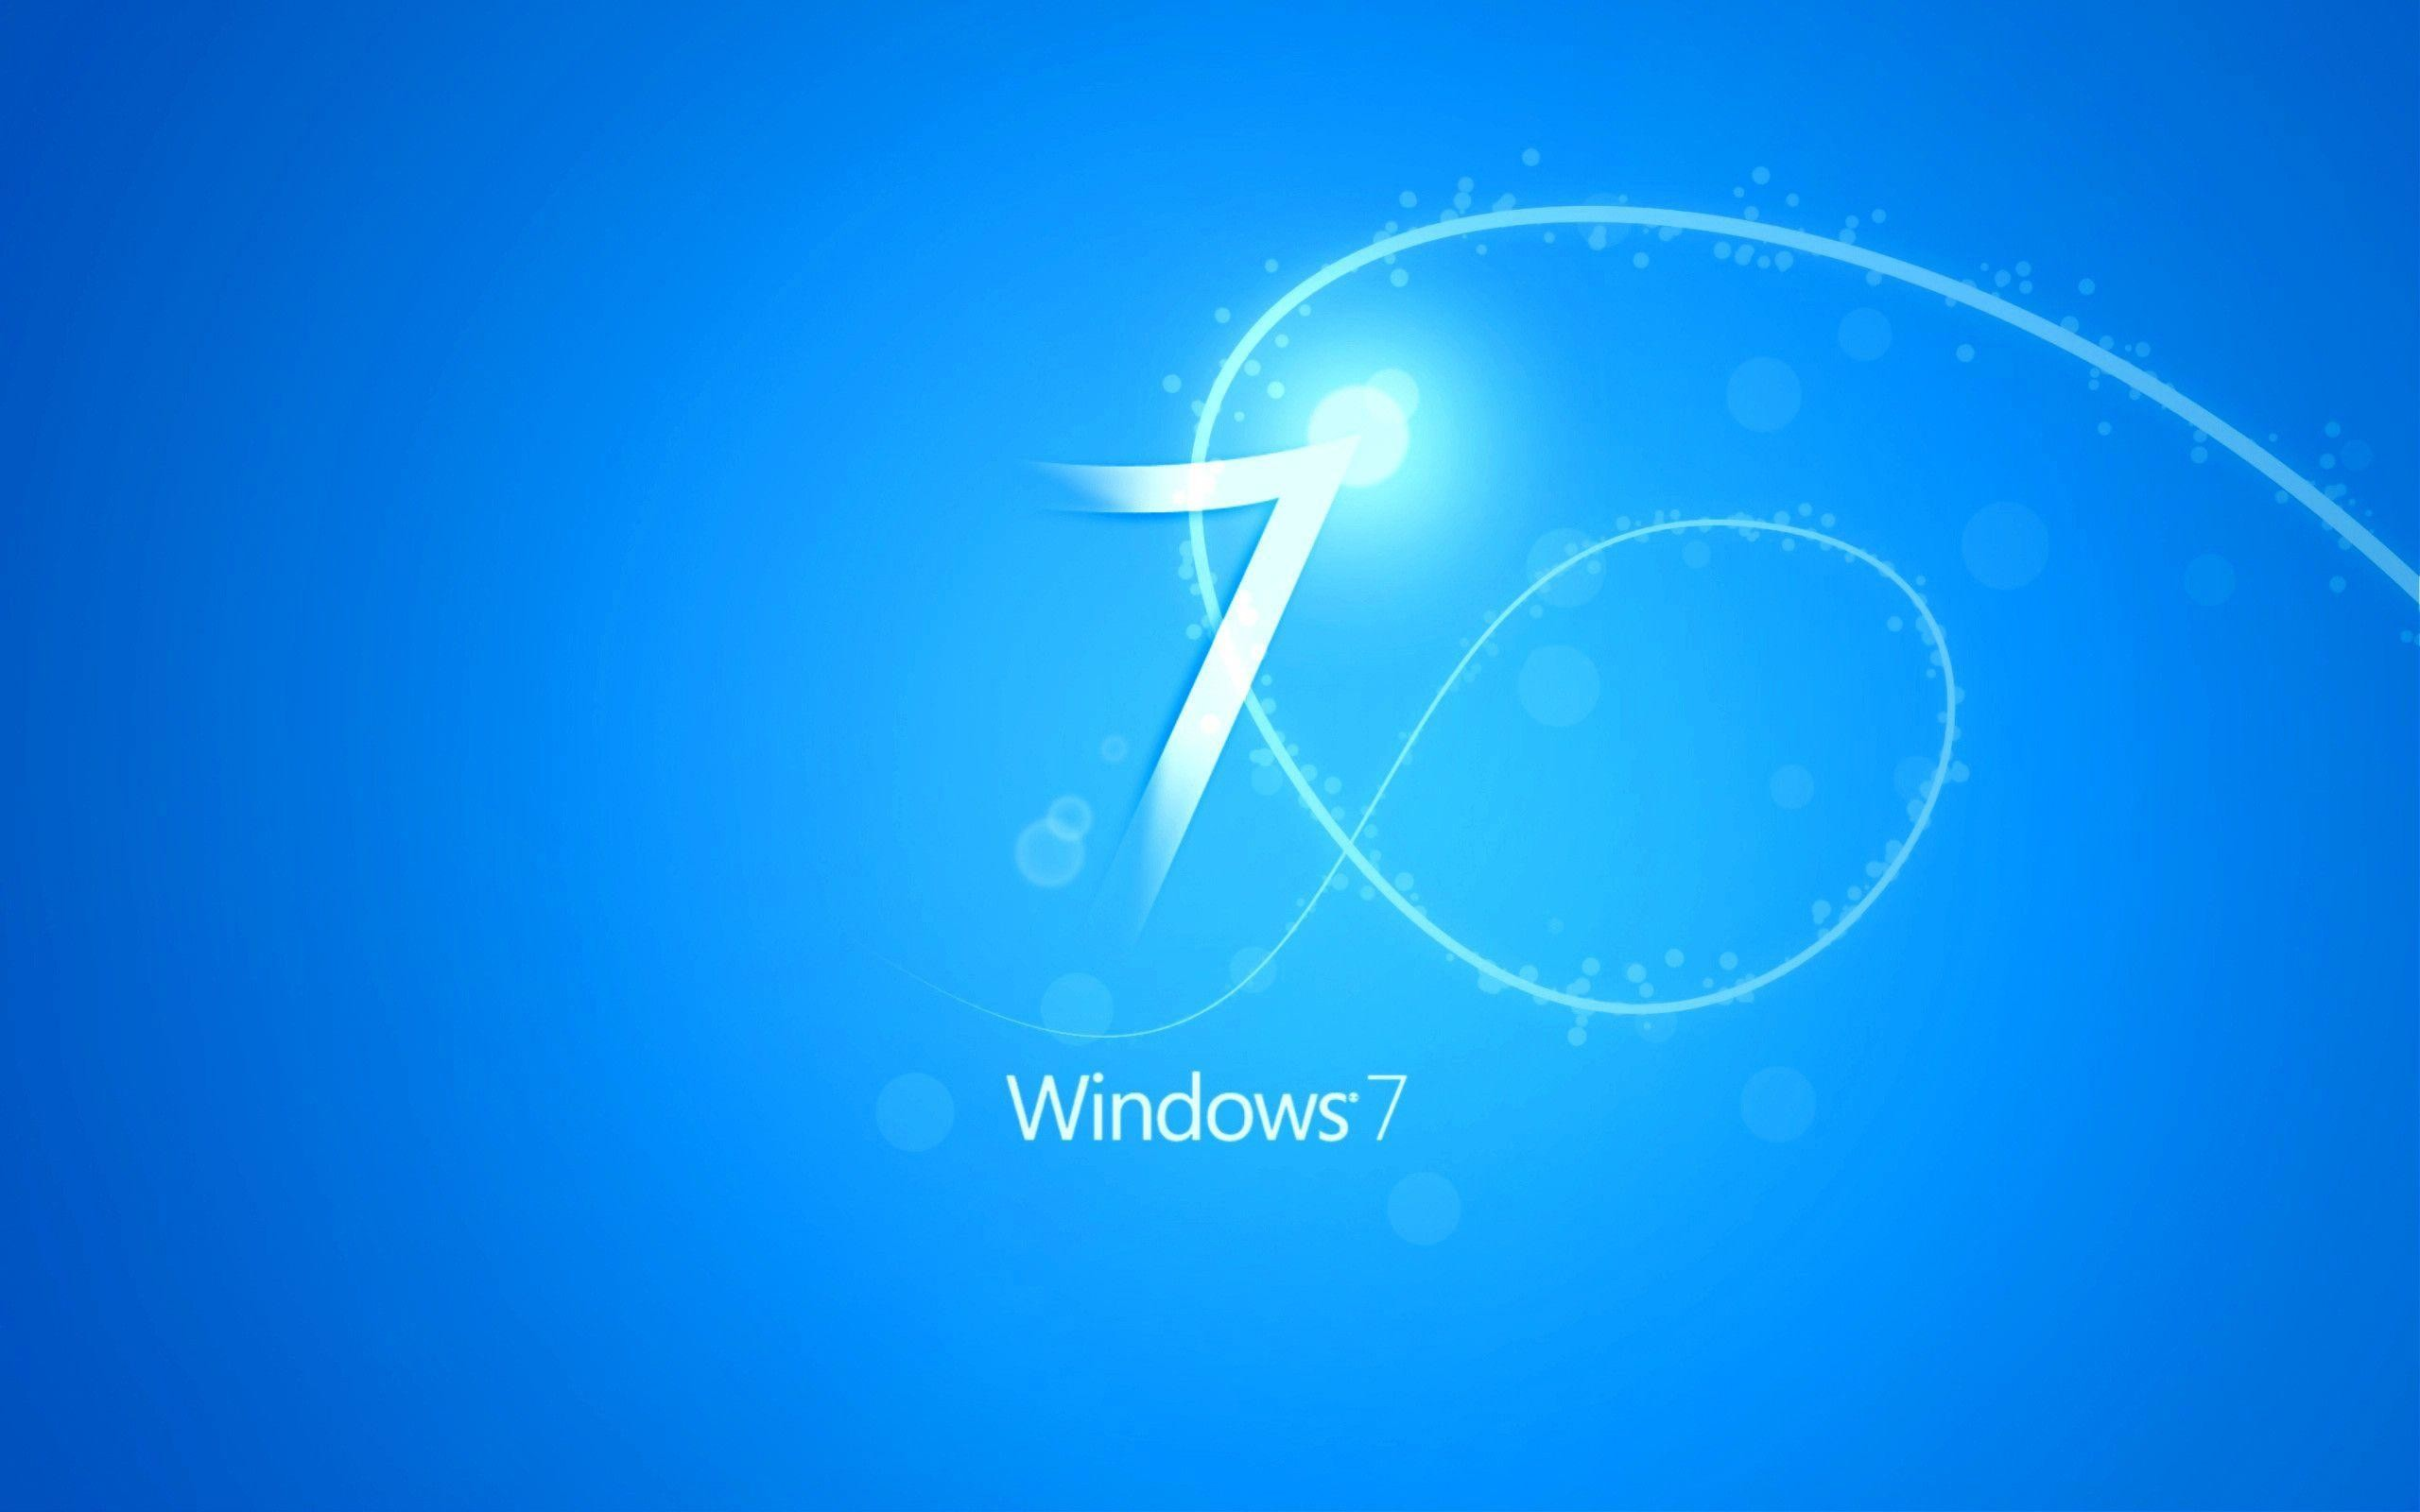 2560x1600 Blue Windows 7 Wallpapers | HD Wallpapers